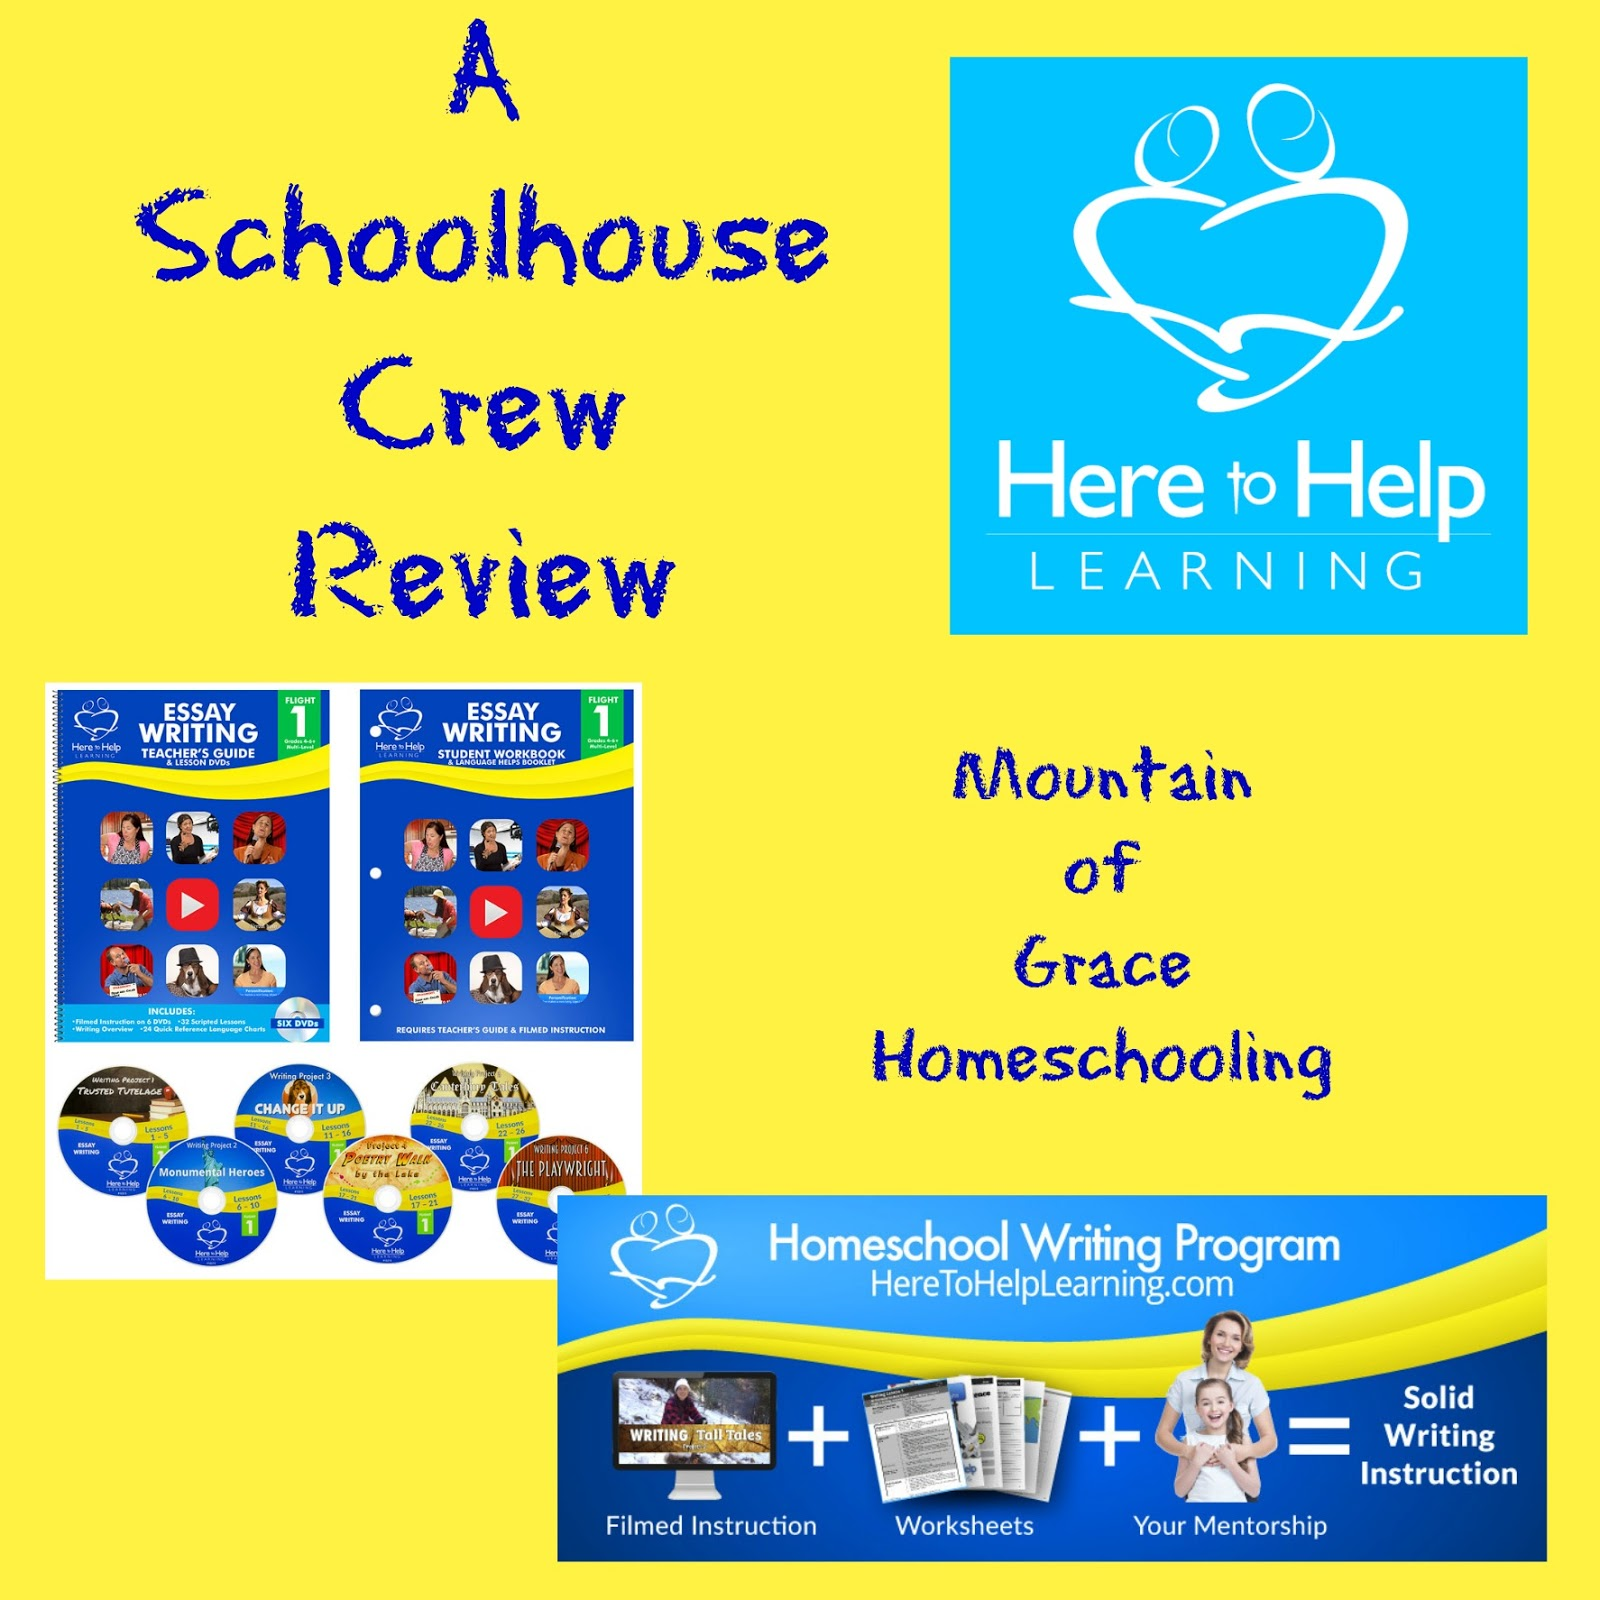 homeschooling essay Essays - largest database of quality sample essays and research papers on argumentative essay on homeschooling.